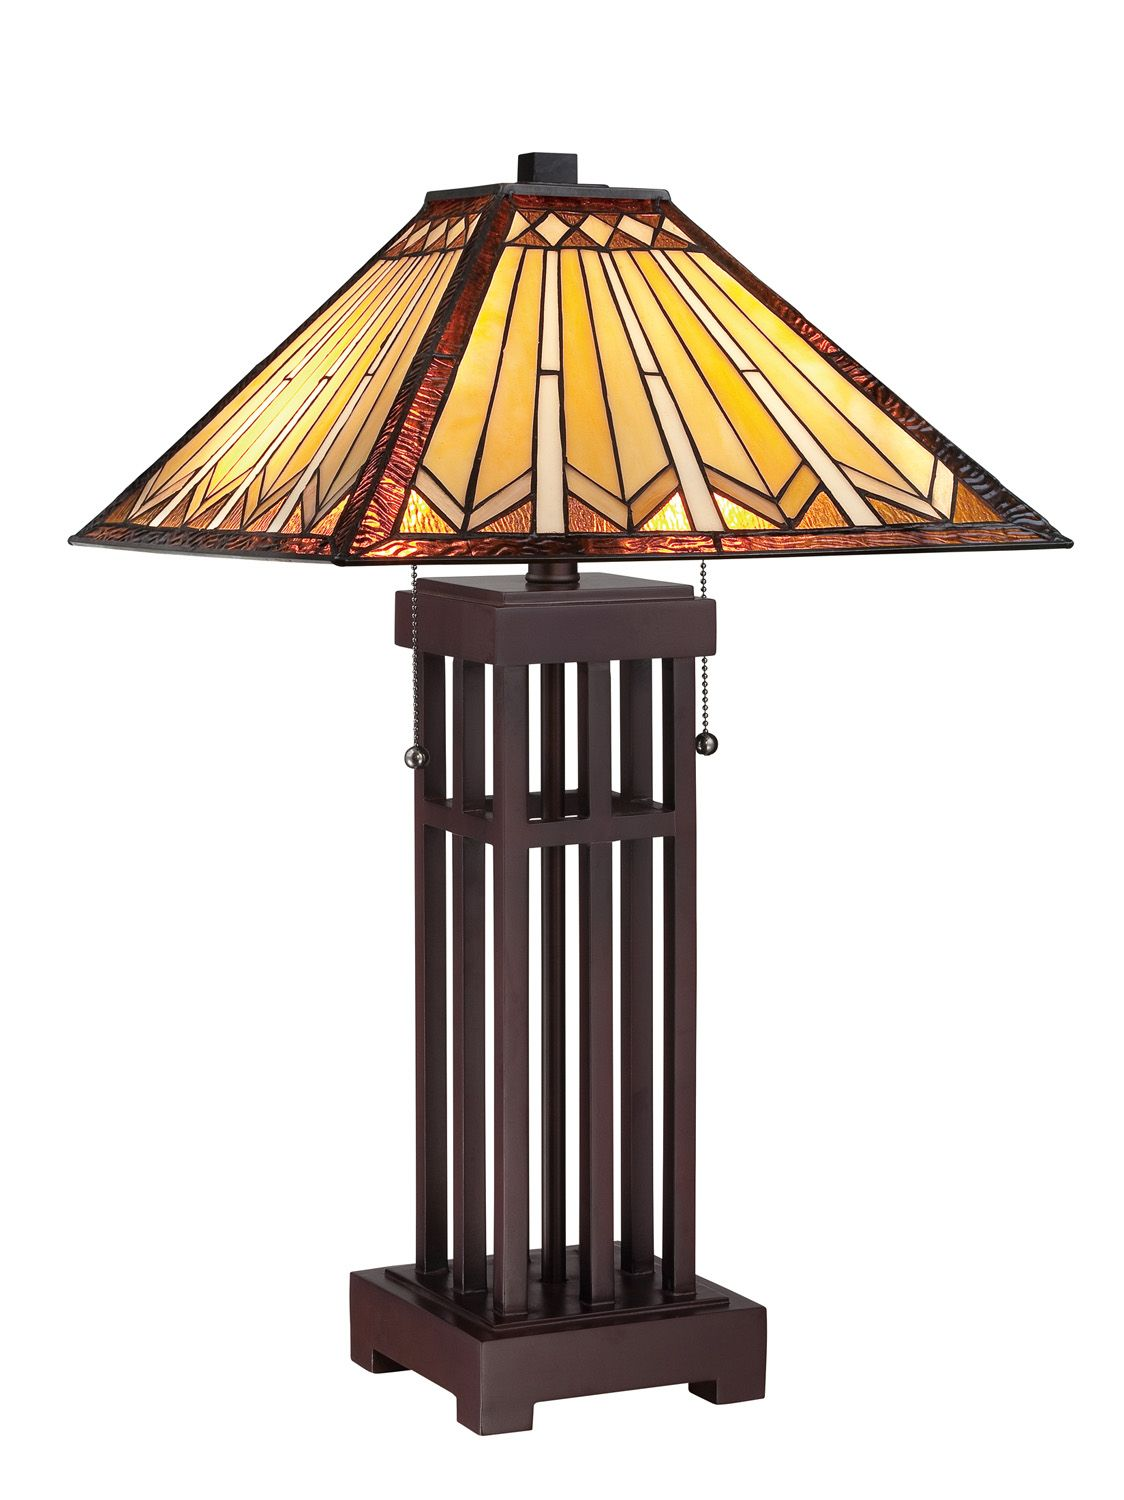 Quoizel Craftsman Mission Style Table Lamp Bronze Table Lamp Table Lamp Lamp